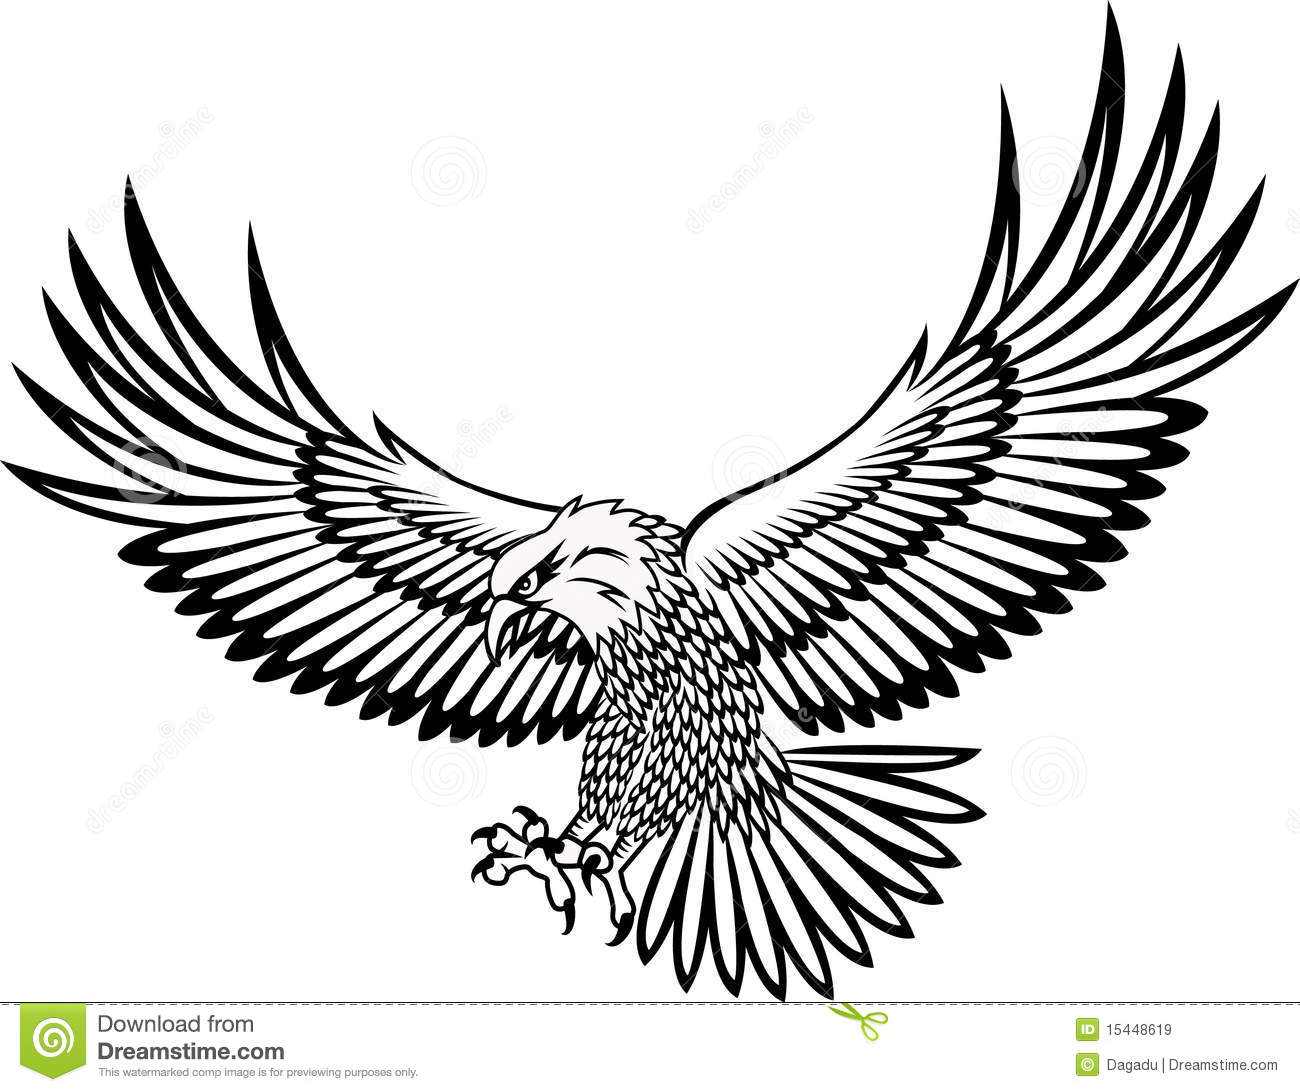 Drawn hawk flying Dragons tattoo hawks White